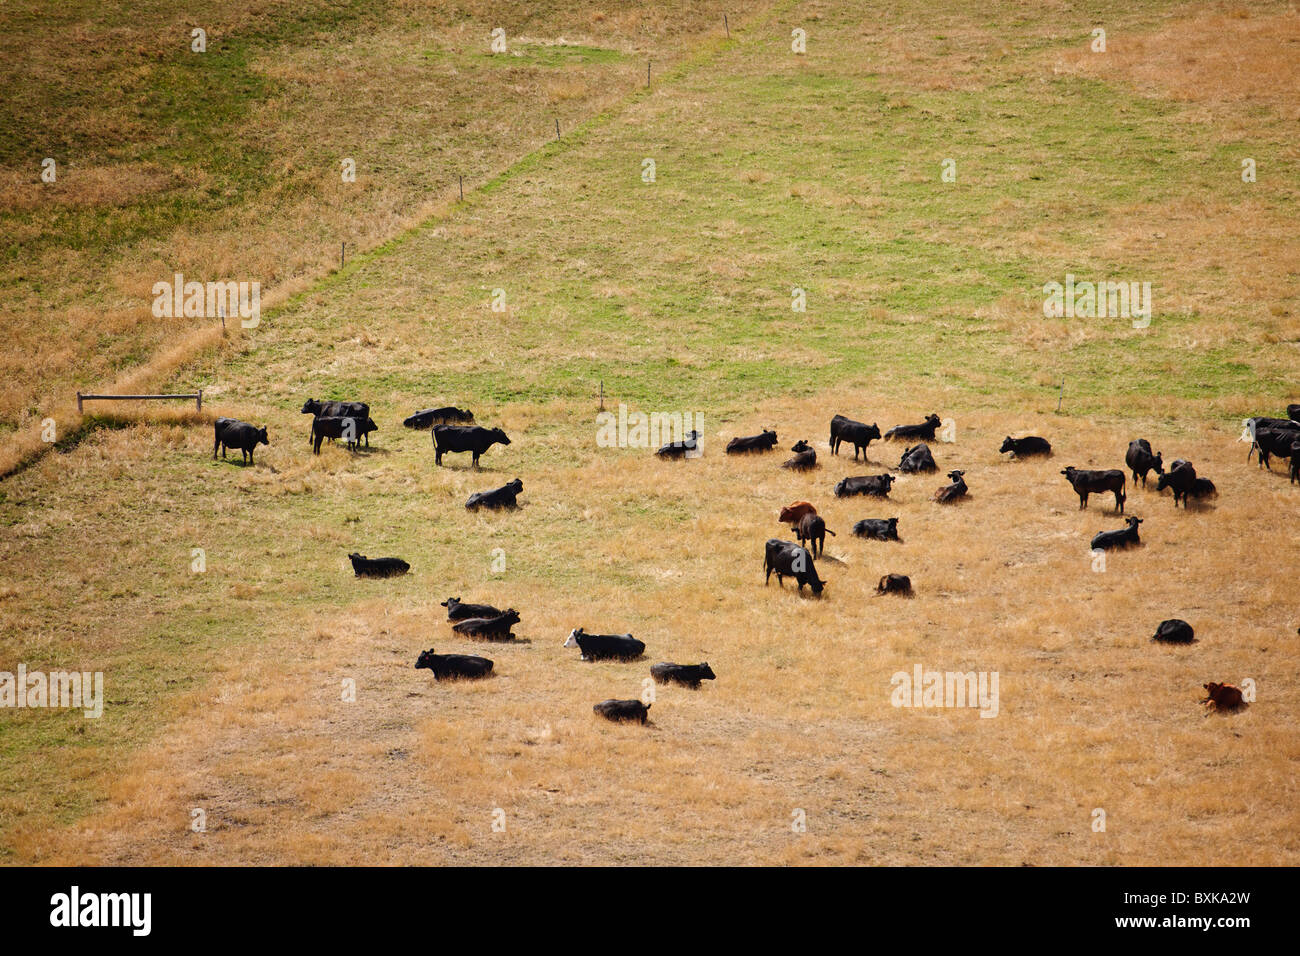 Cattle laze in the morning sun - Stock Image